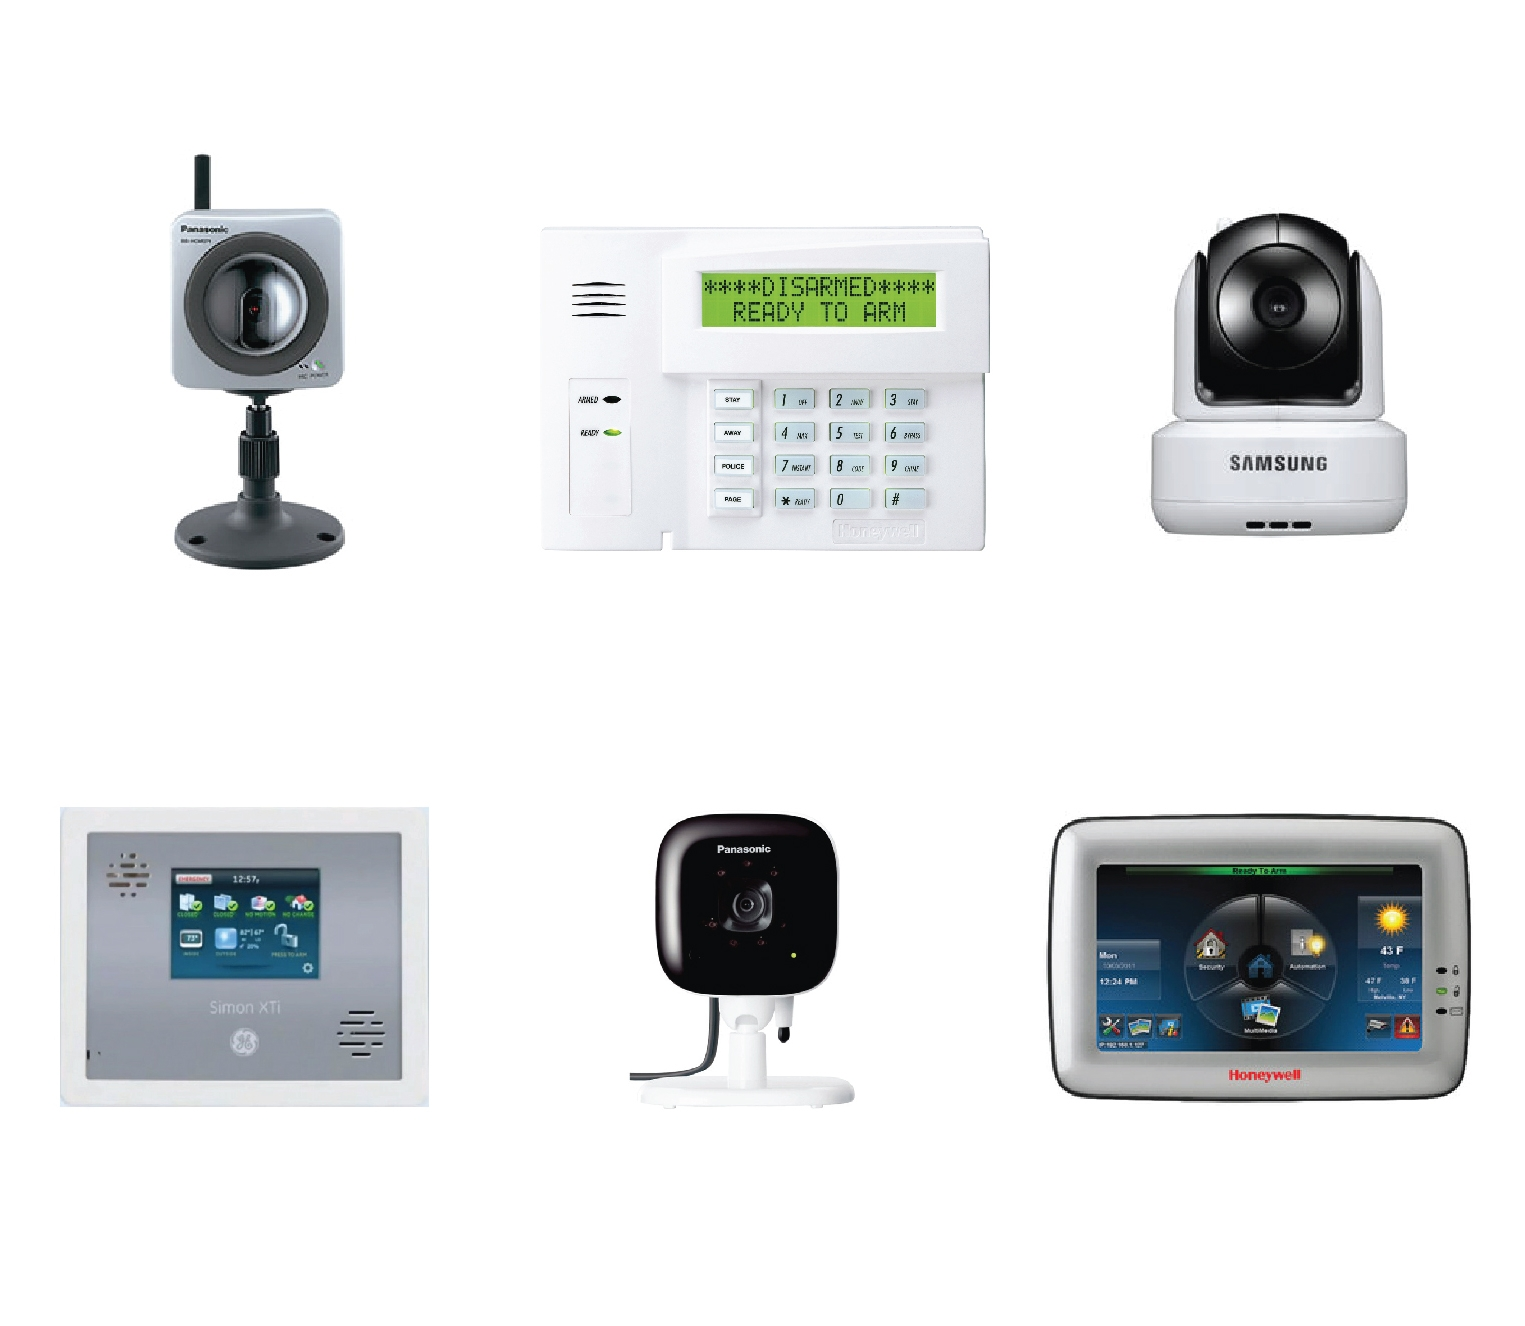 We found that the security systems in the market today mostly...- Require professional installation and setup.- Requires drilling or nailing into wall structures.- Are made of cheap looking plastic square panels.- Have lots of buttons or a touch screen that is hard to use.- Have rigid and intimidating looking camera.- Are designs that are not user friendly nor aesthetically pleasing.- Require monthly payments for full protection. -